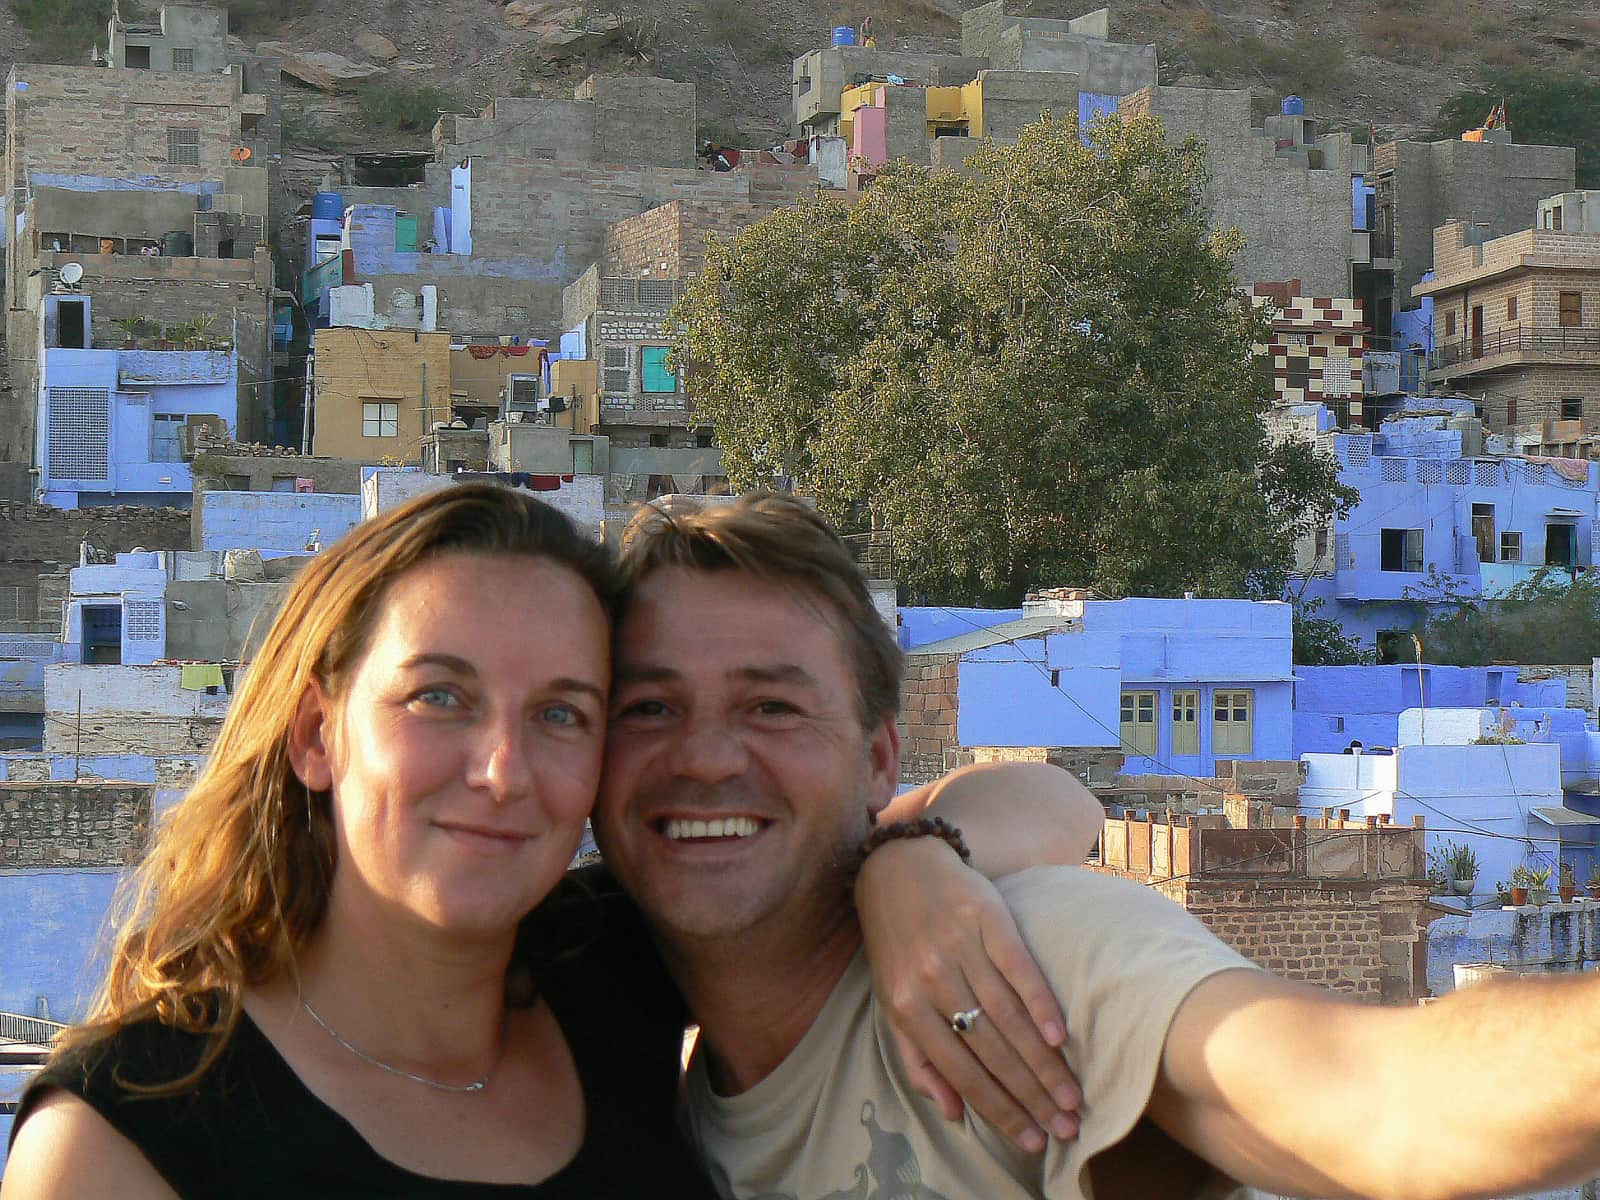 Corinne & Rob from Venray, Netherlands